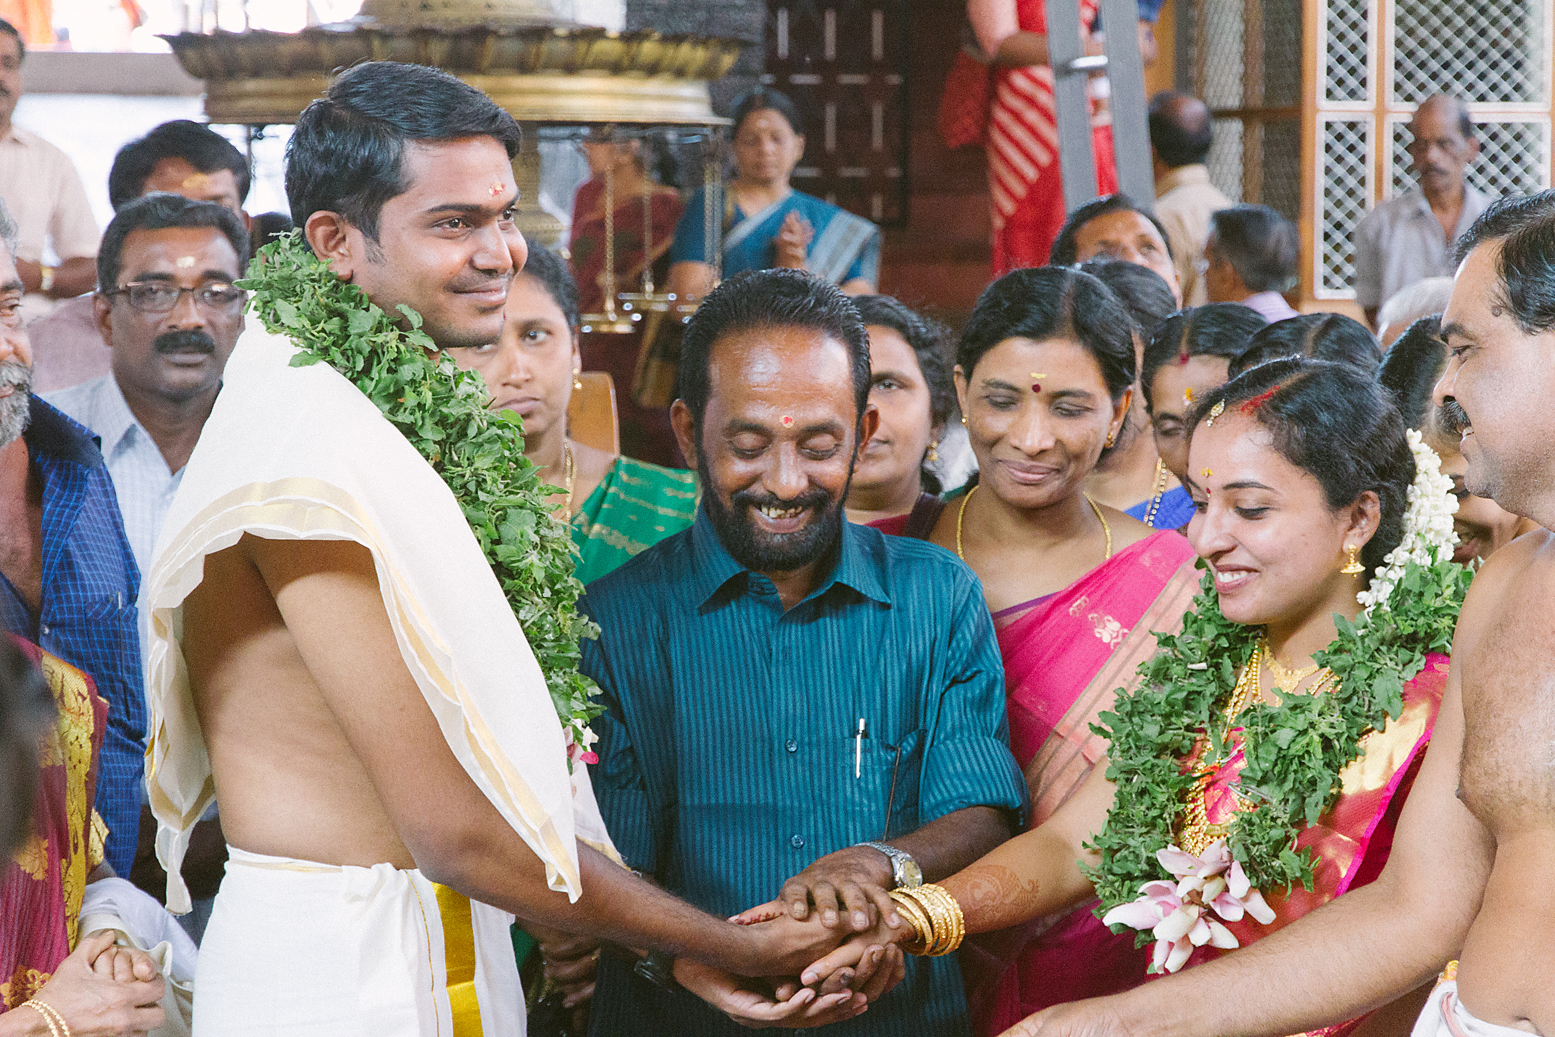 In a temple (Kerala, India). (Image by Poppy & Sage Photography.)